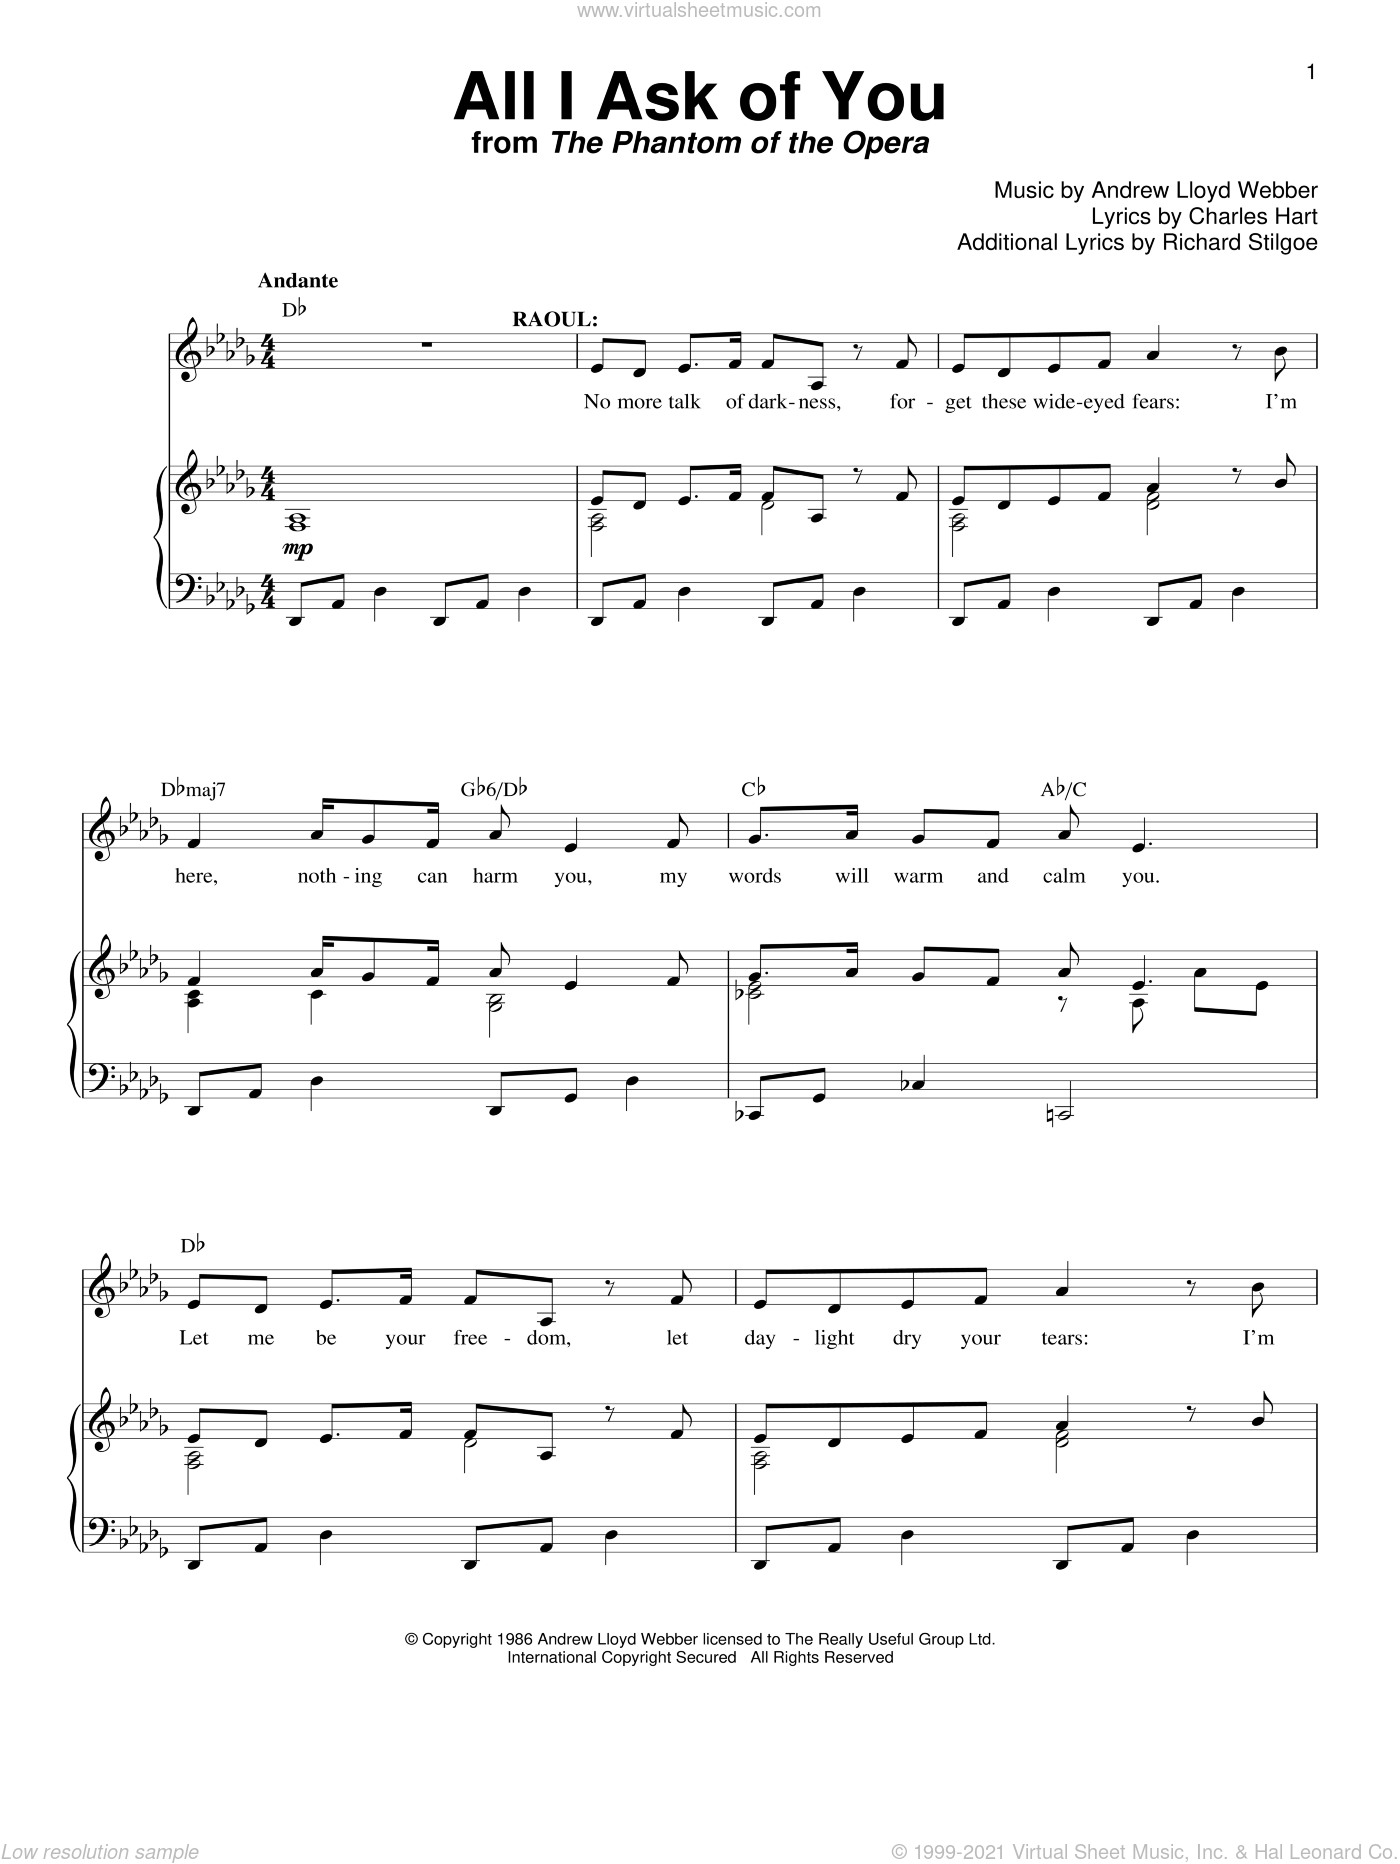 All I Ask Of You sheet music for voice and piano by Andrew Lloyd Webber, The Phantom Of The Opera (Musical), Charles Hart and Richard Stilgoe, wedding score, intermediate skill level